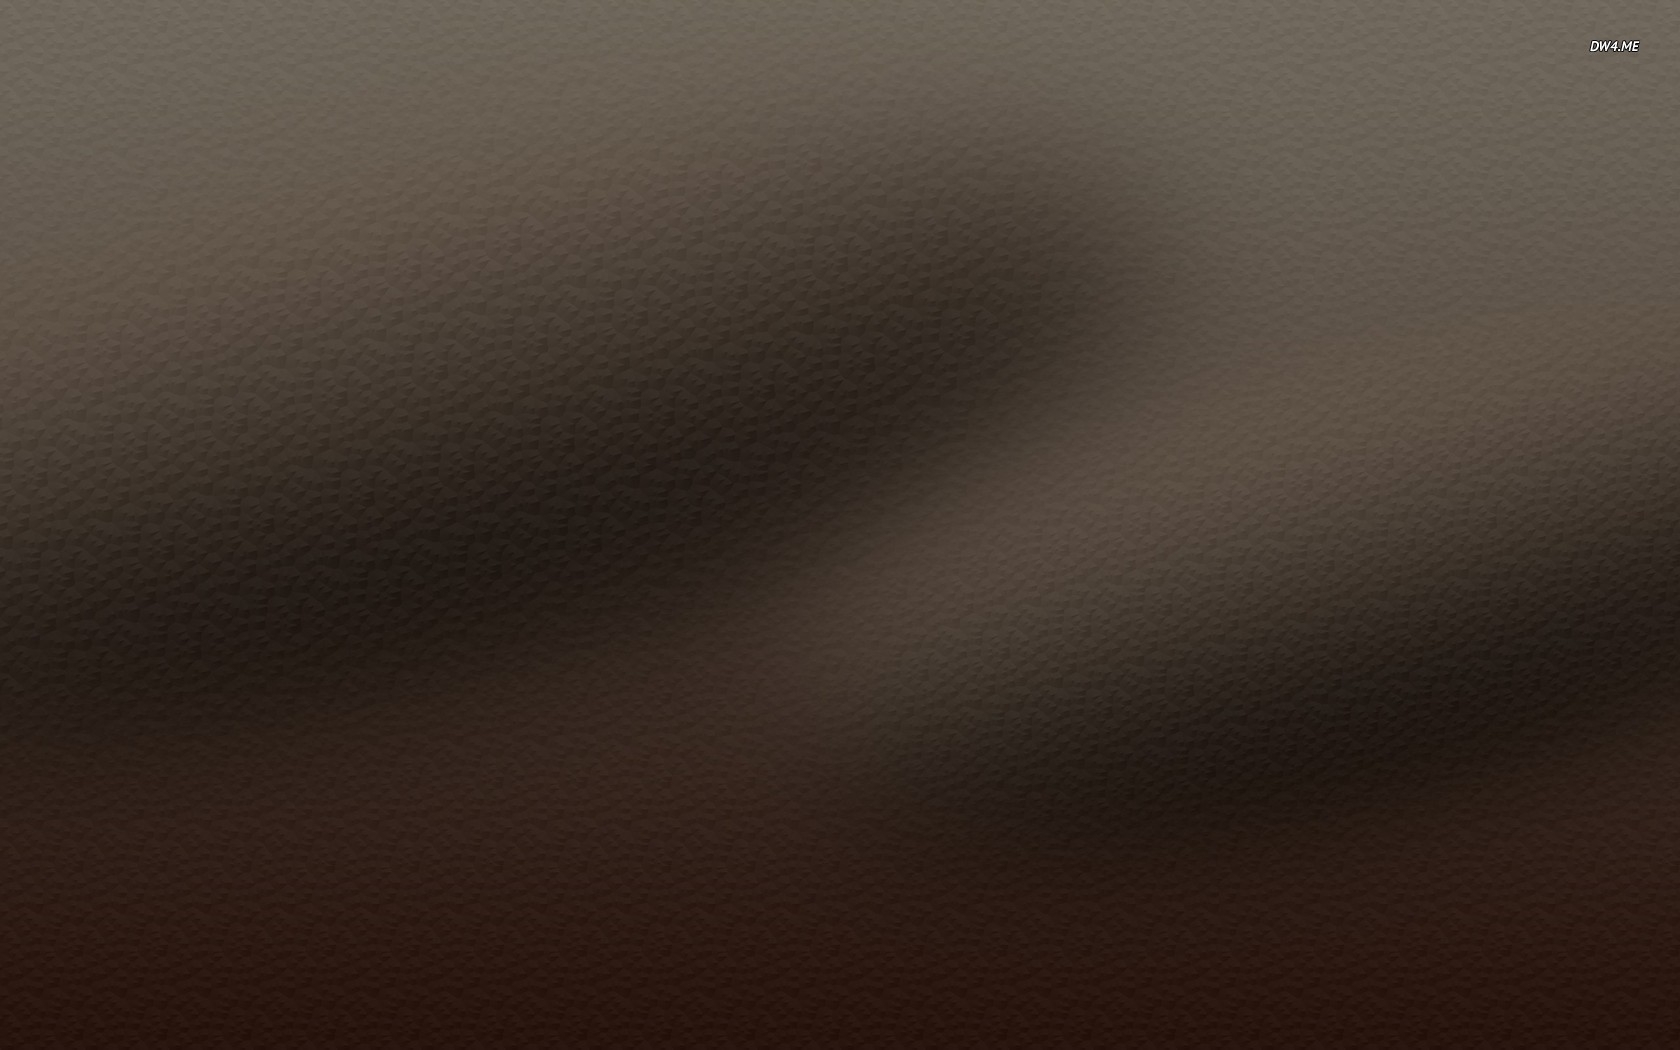 Brown leather wallpaper   Minimalistic wallpapers   169 1680x1050